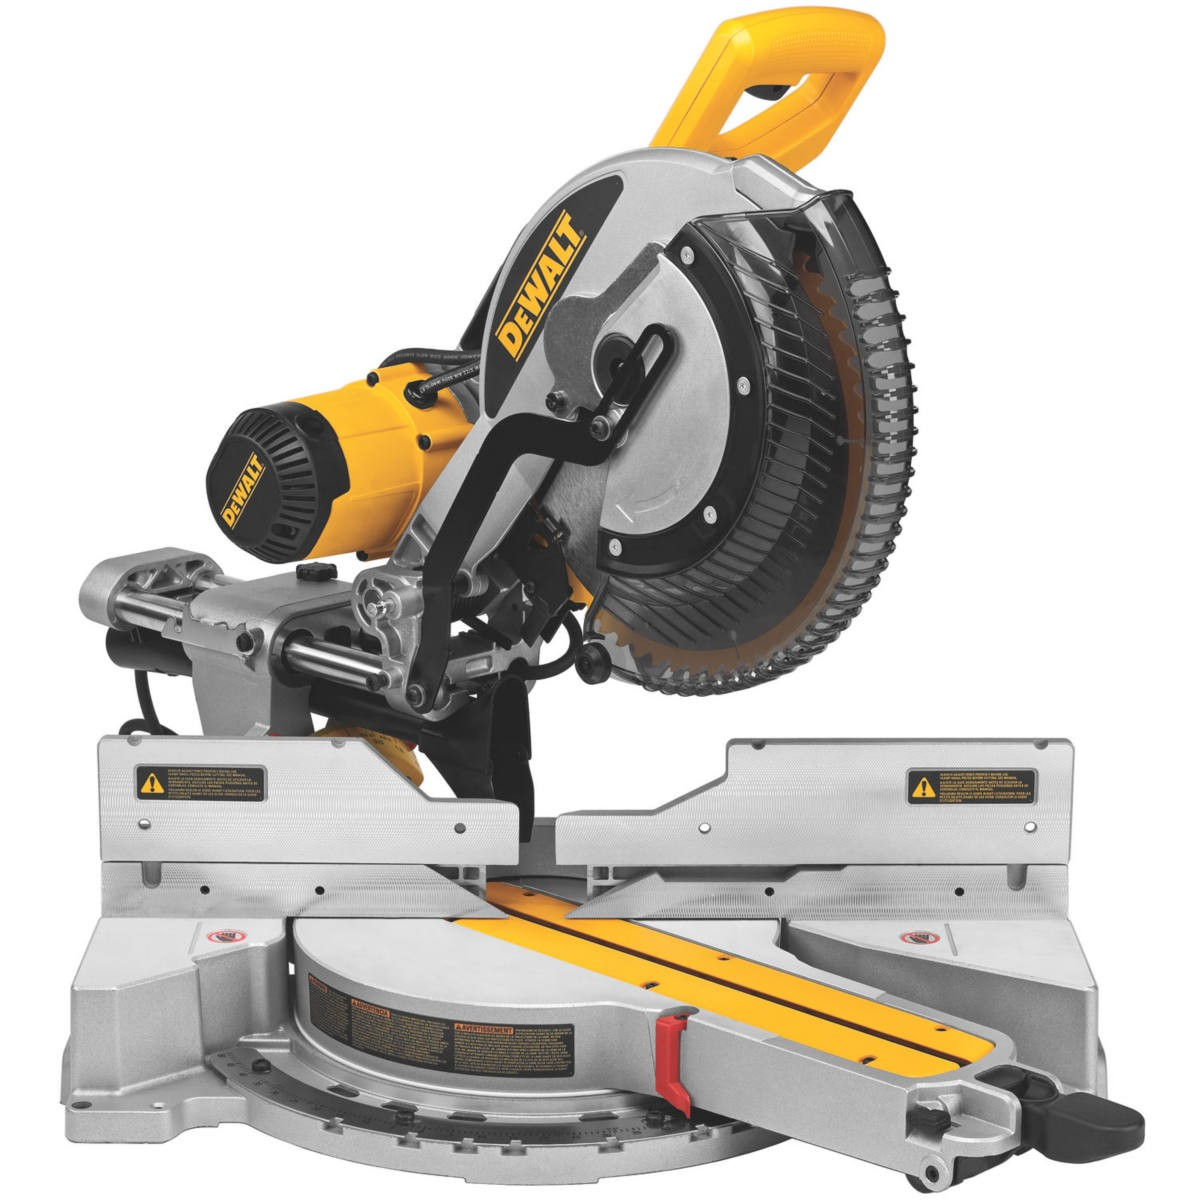 DeWalt DWS780 GB Double Bevel Mitre Saw 240v